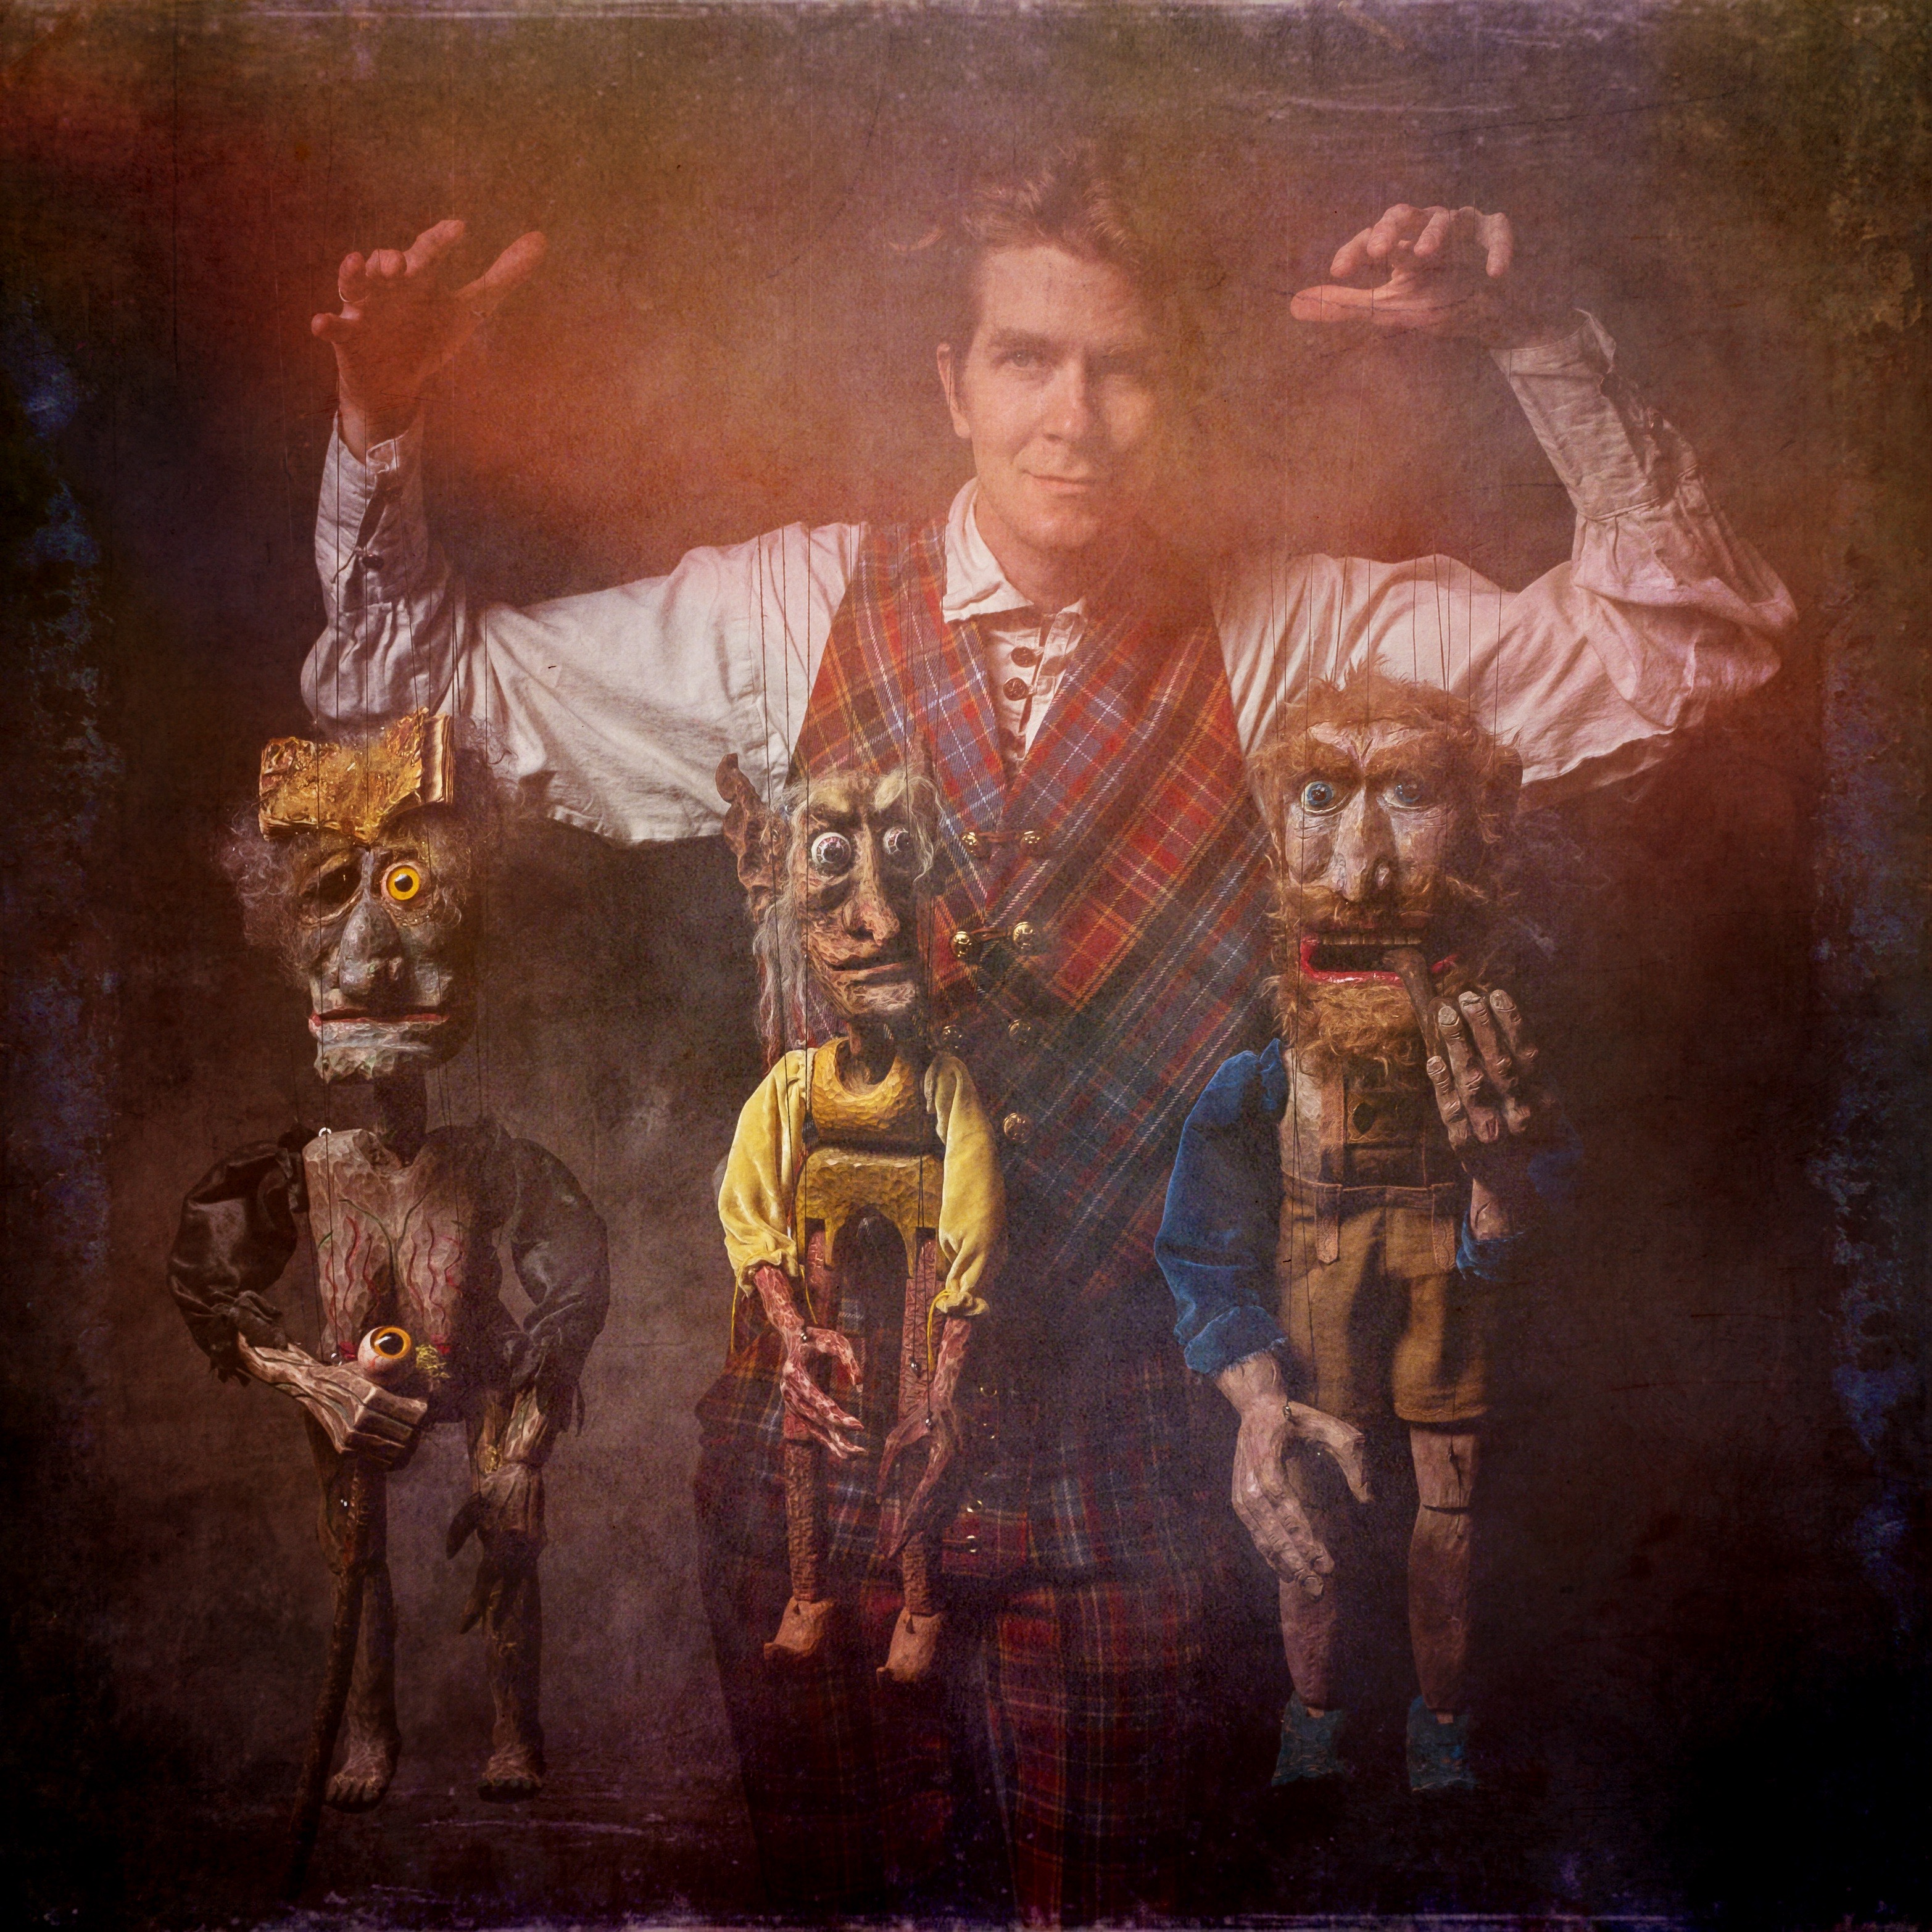 Storyteller-and-puppeteer-Dalrymple-MacAlpin-with-three-marionettes